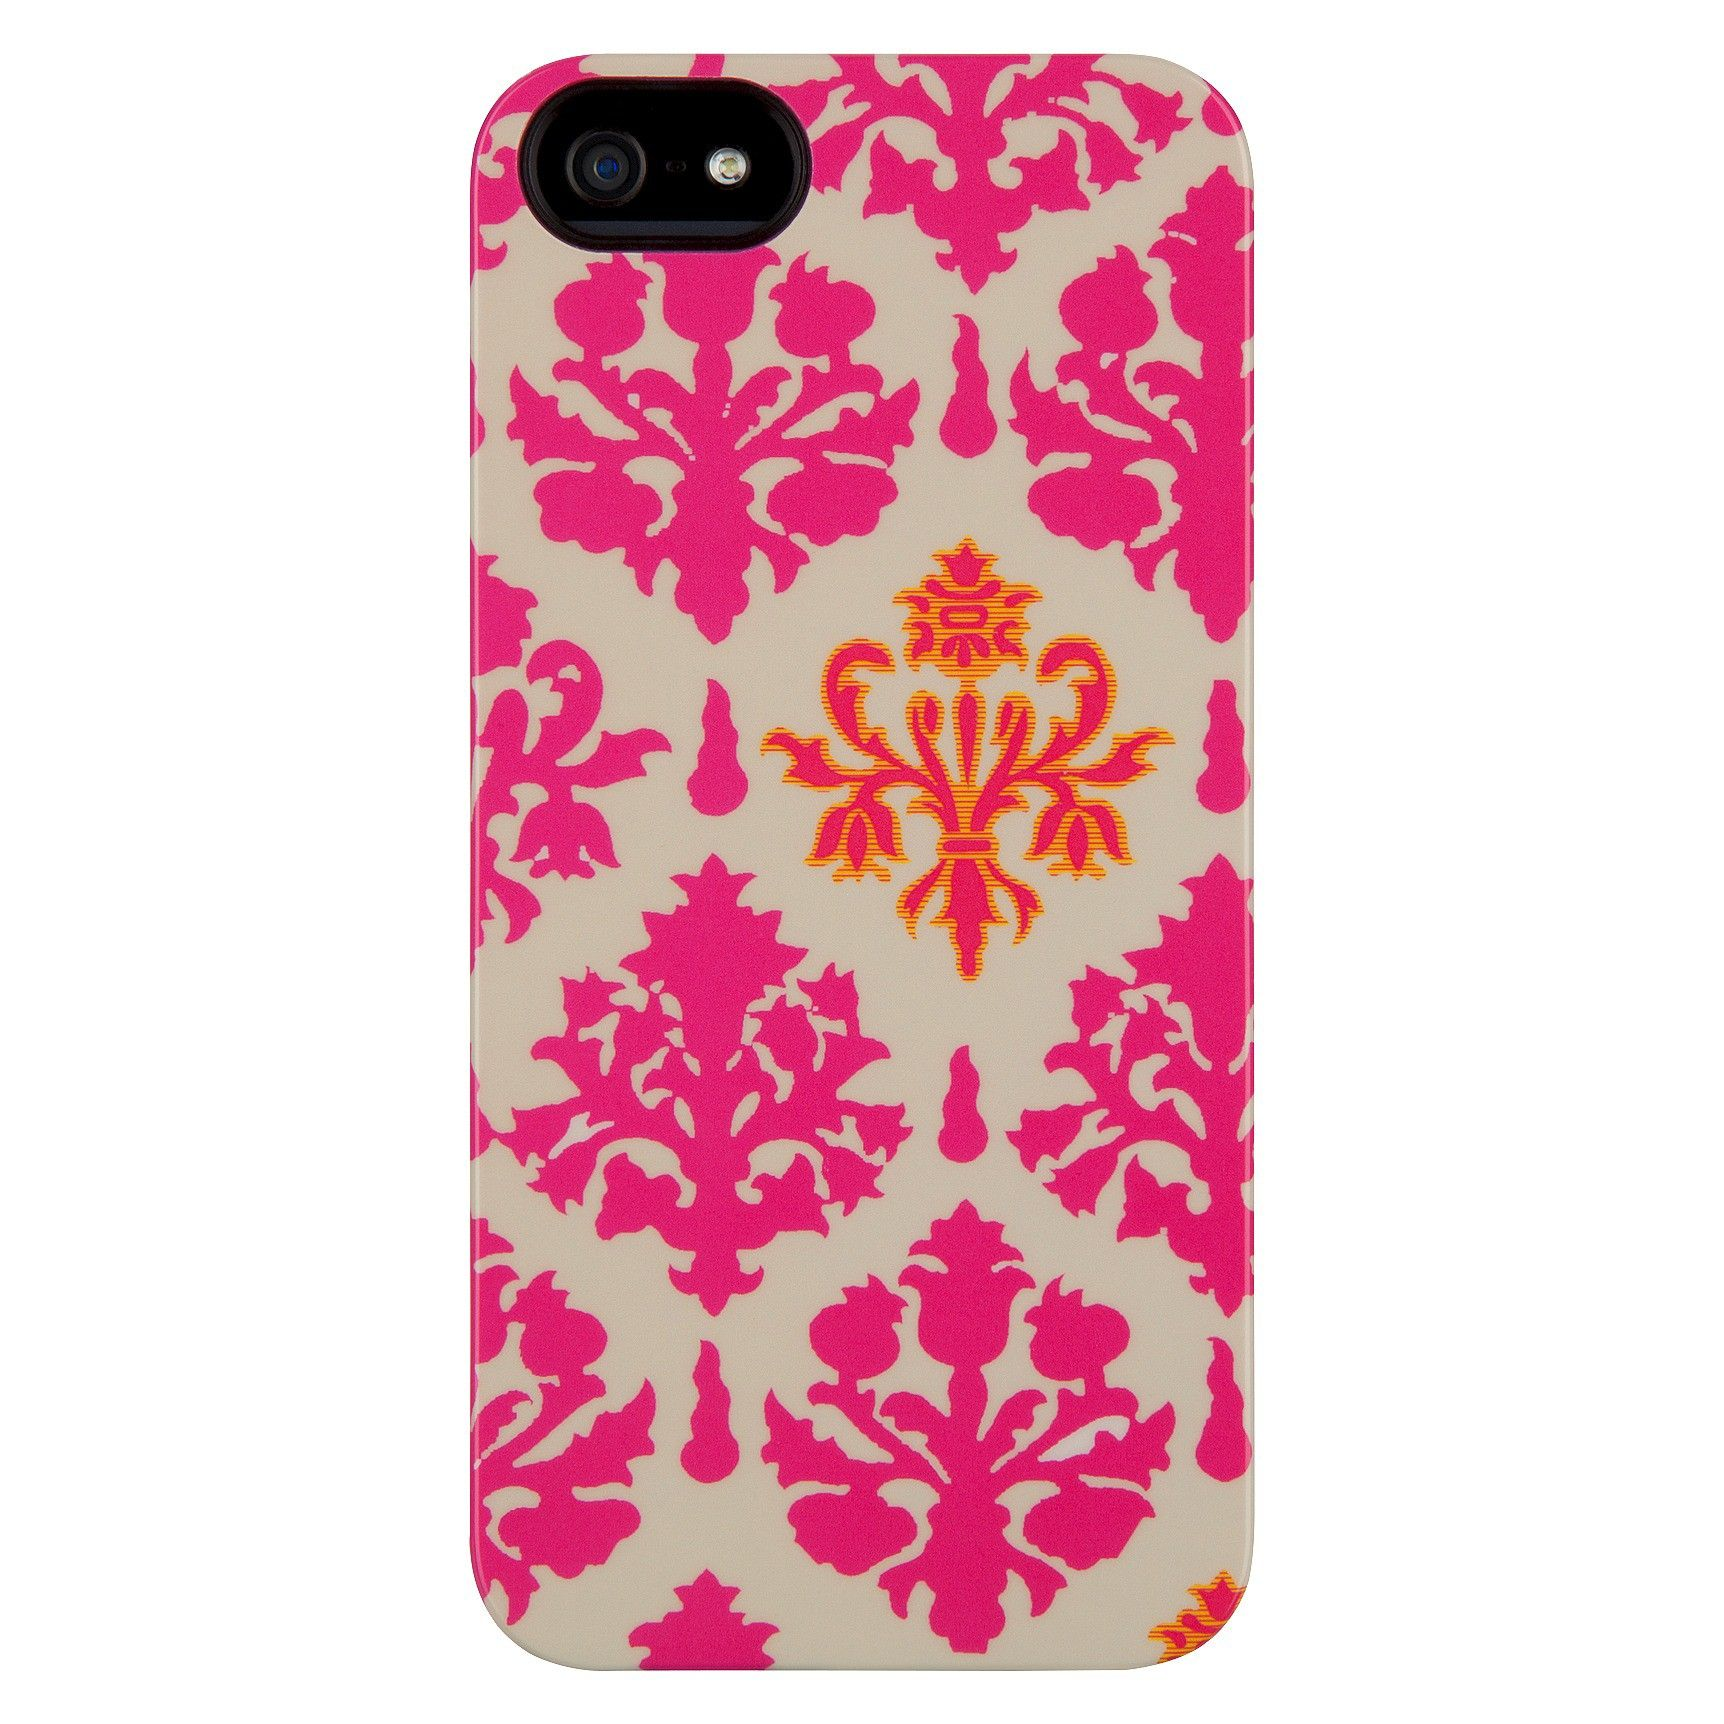 Belkin tracy reese cell phone case for iphone 5